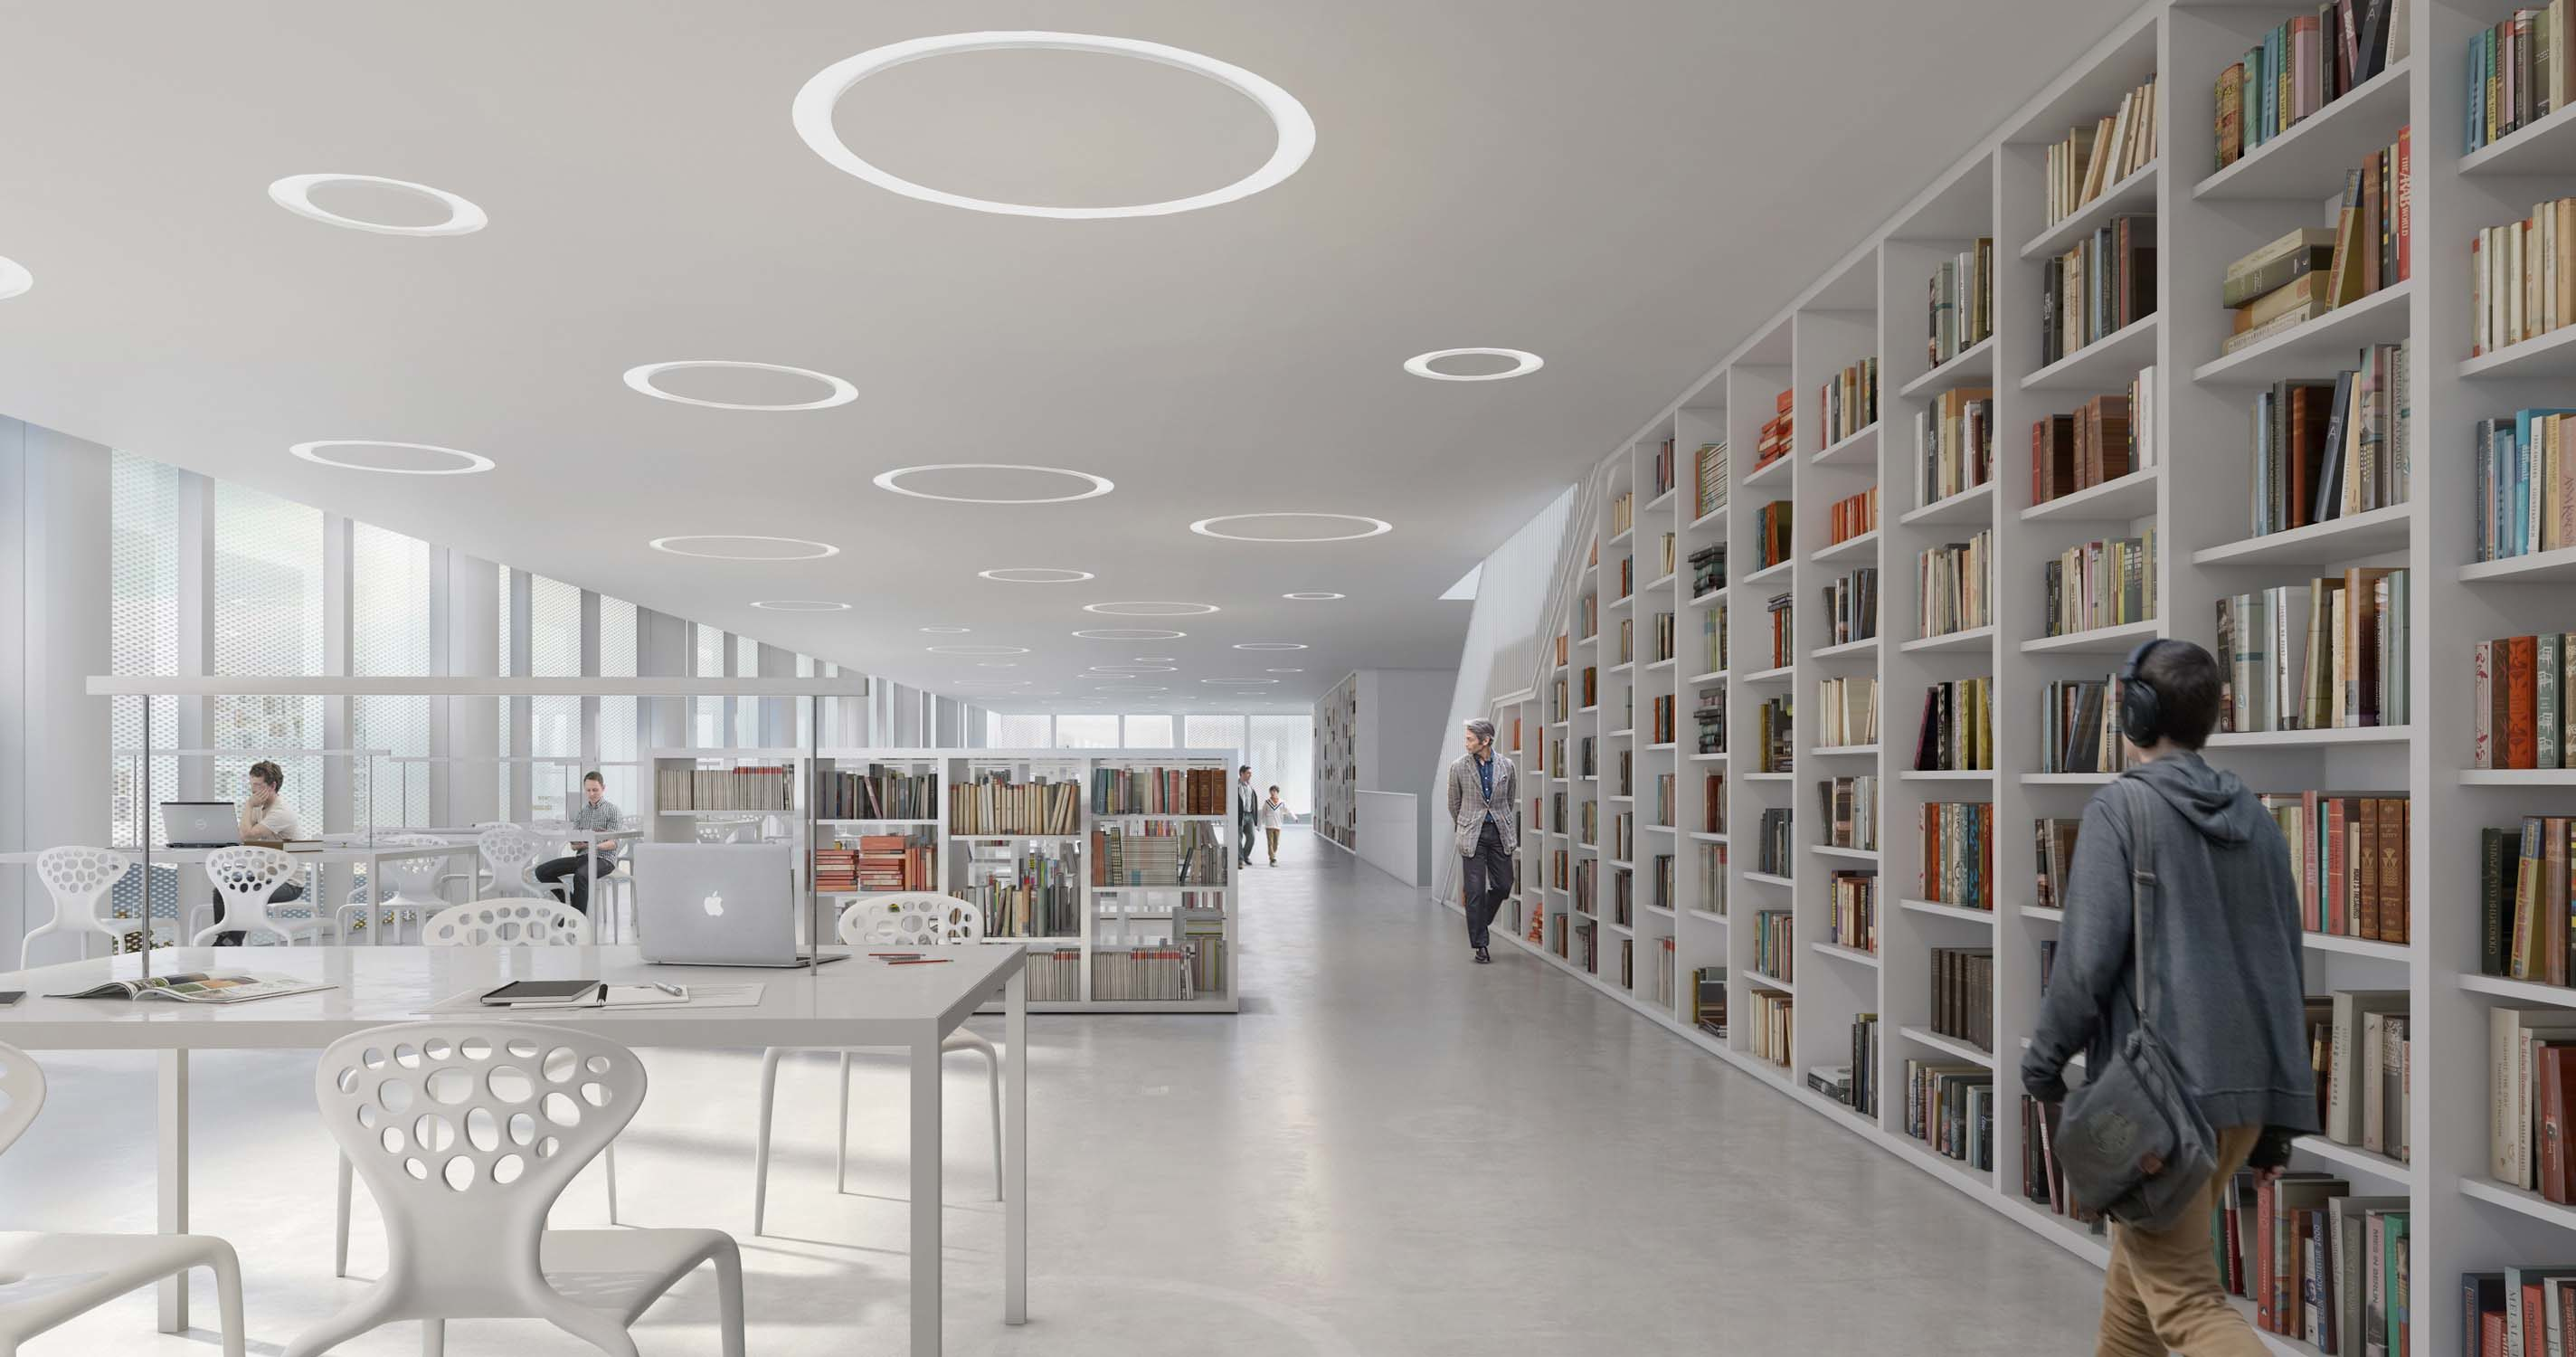 New library in Varna – AMA Andrea maffei Architects, 2016